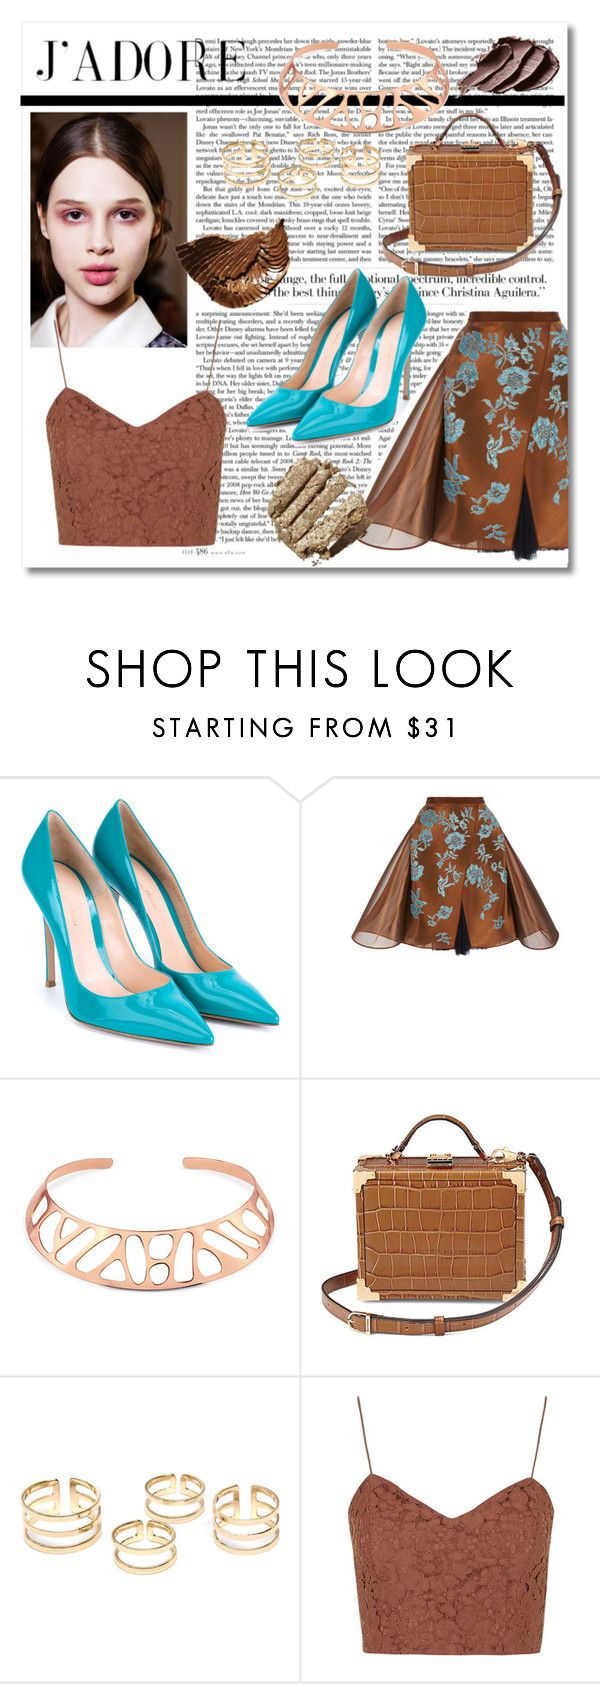 """Sin título #852"" by meelstyle on Polyvore featuring moda, Gianvito Rossi, Delpozo, BERRICLE, Aspinal of London y Topshop"